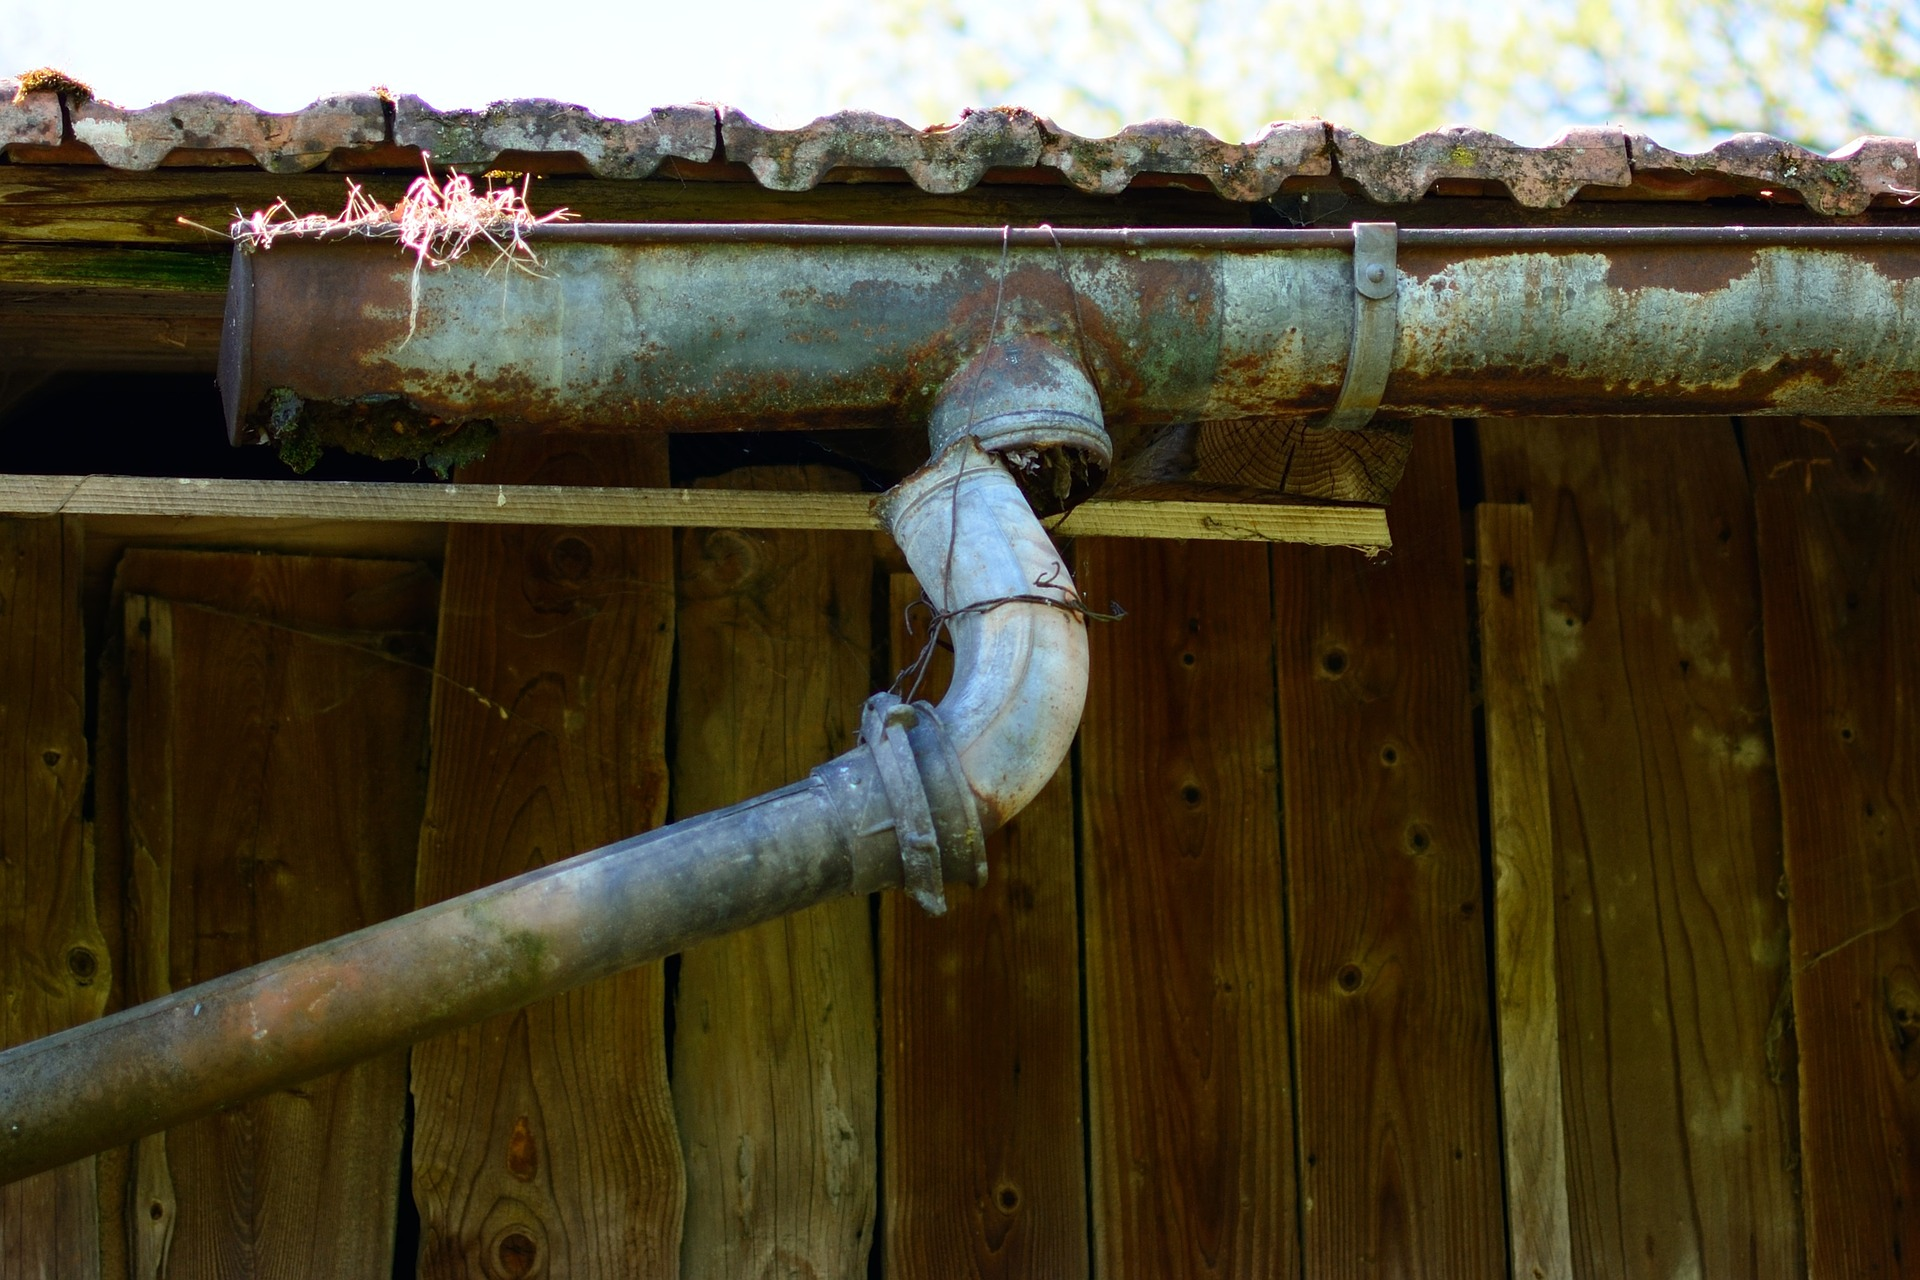 How to Clean Out a Blocked Downspout on a Gutter